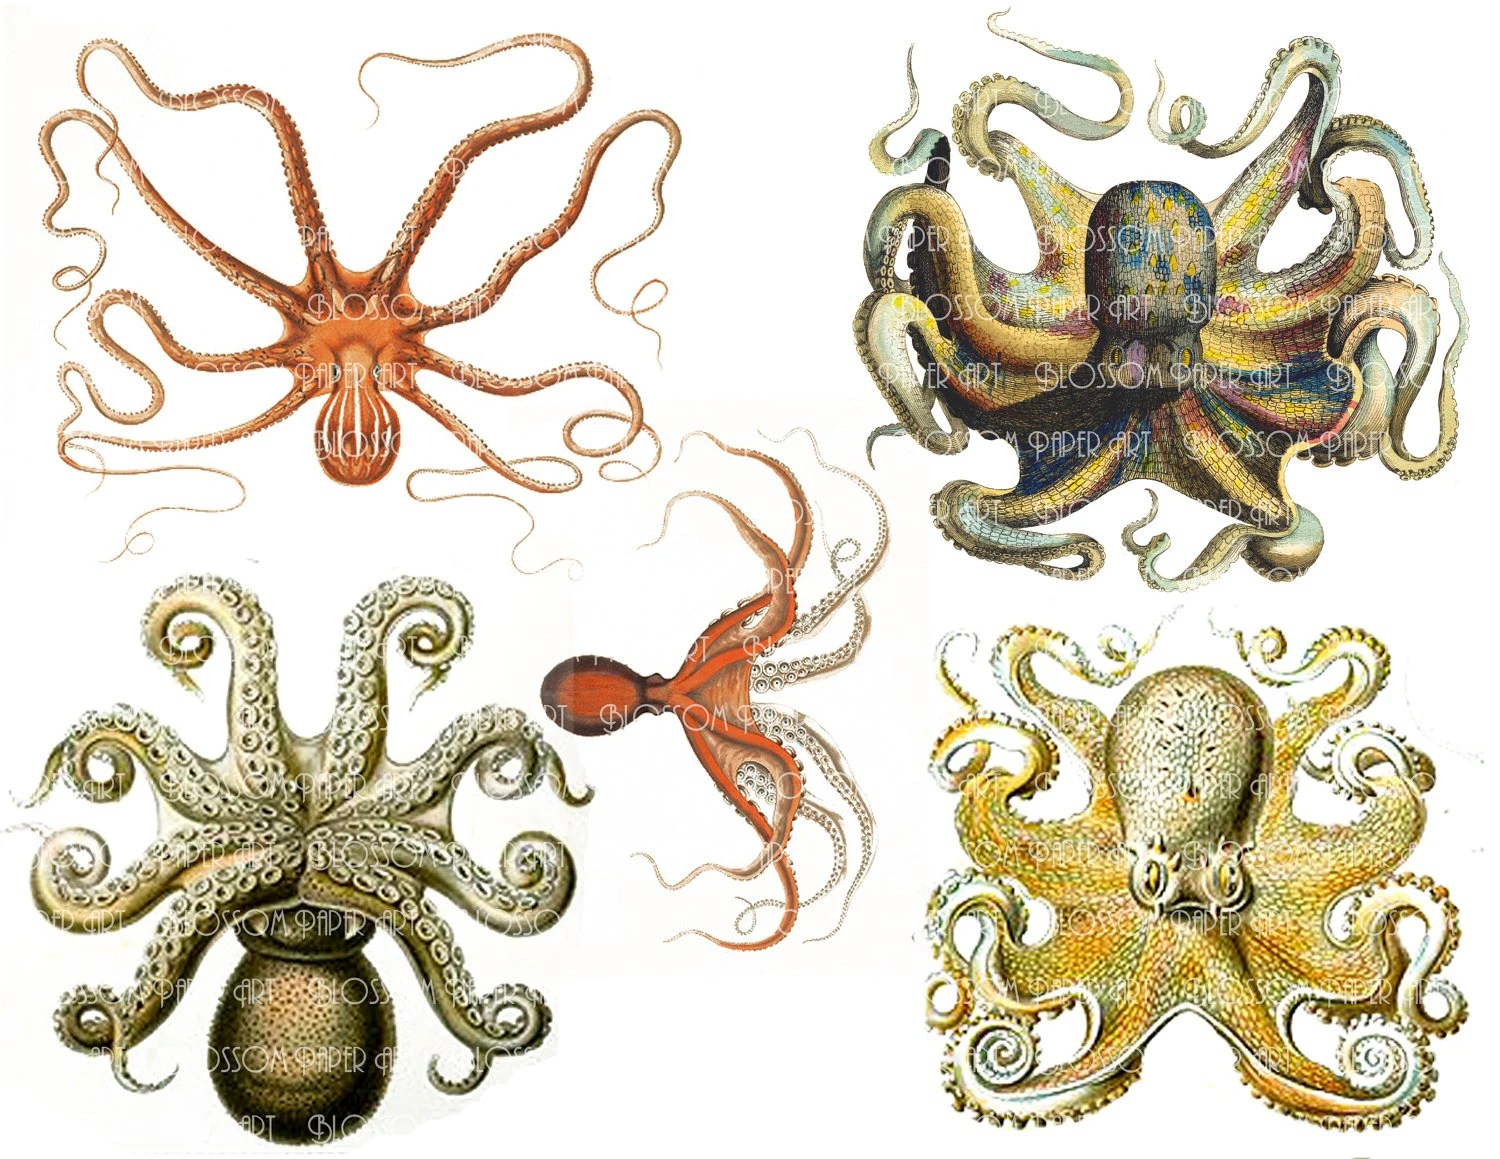 Octopus Collage Sheet Printables Digital Images